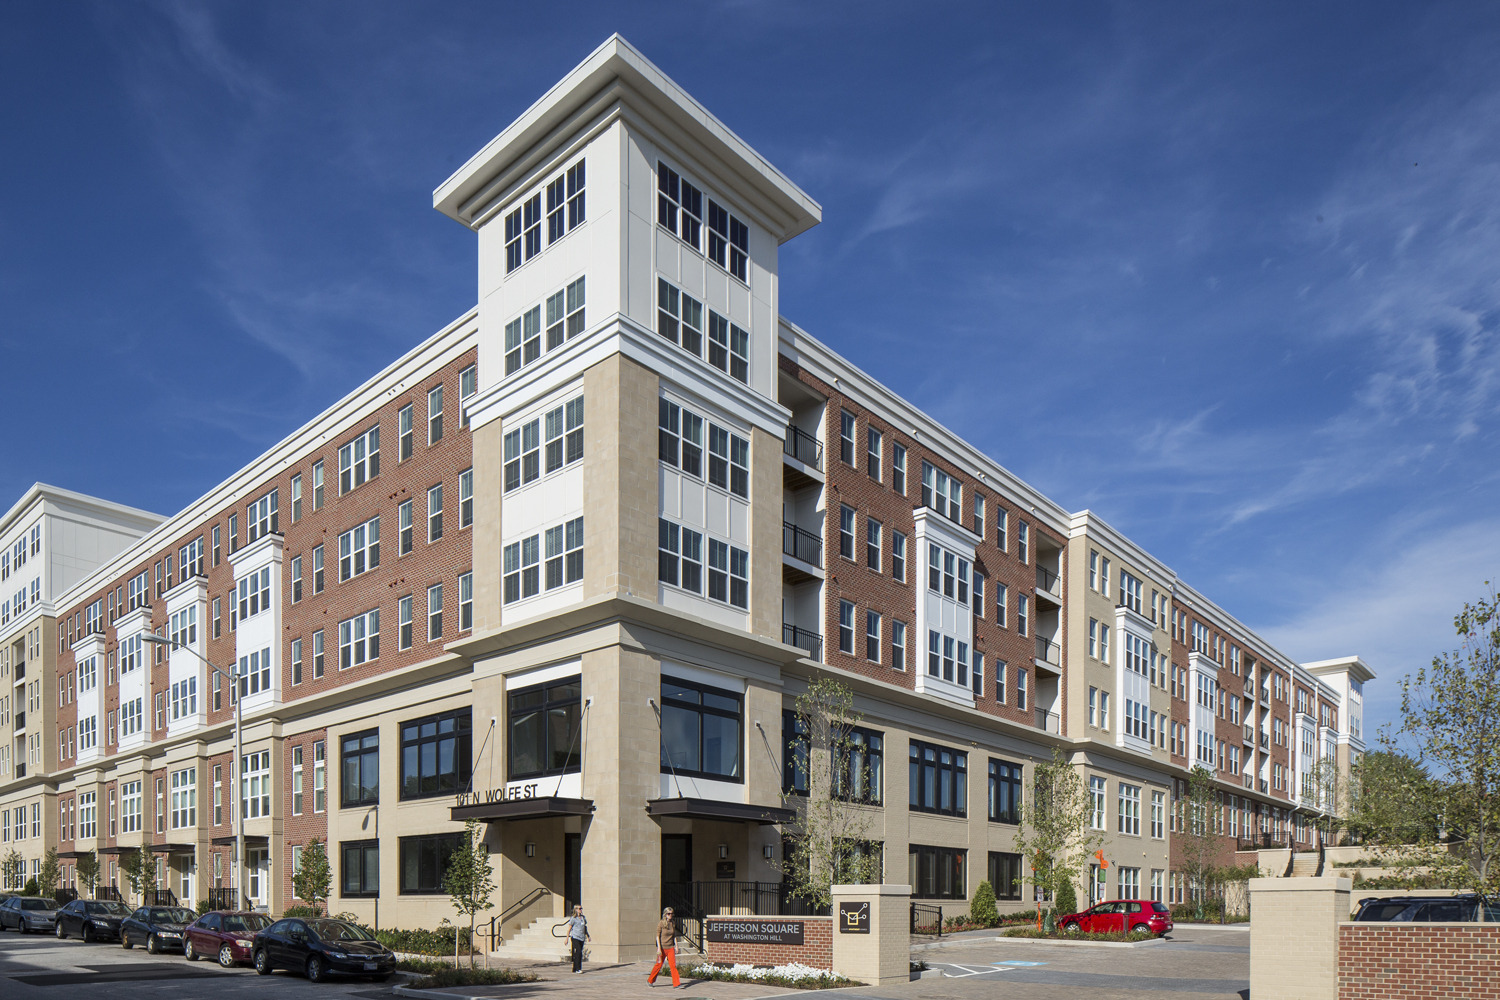 CBG builds Jefferson Square at Washington Hill, a 304-Unit Mixed-Use Apartment Community with Cast-in-Place Parking Garage in Baltimore, MD - Image #1